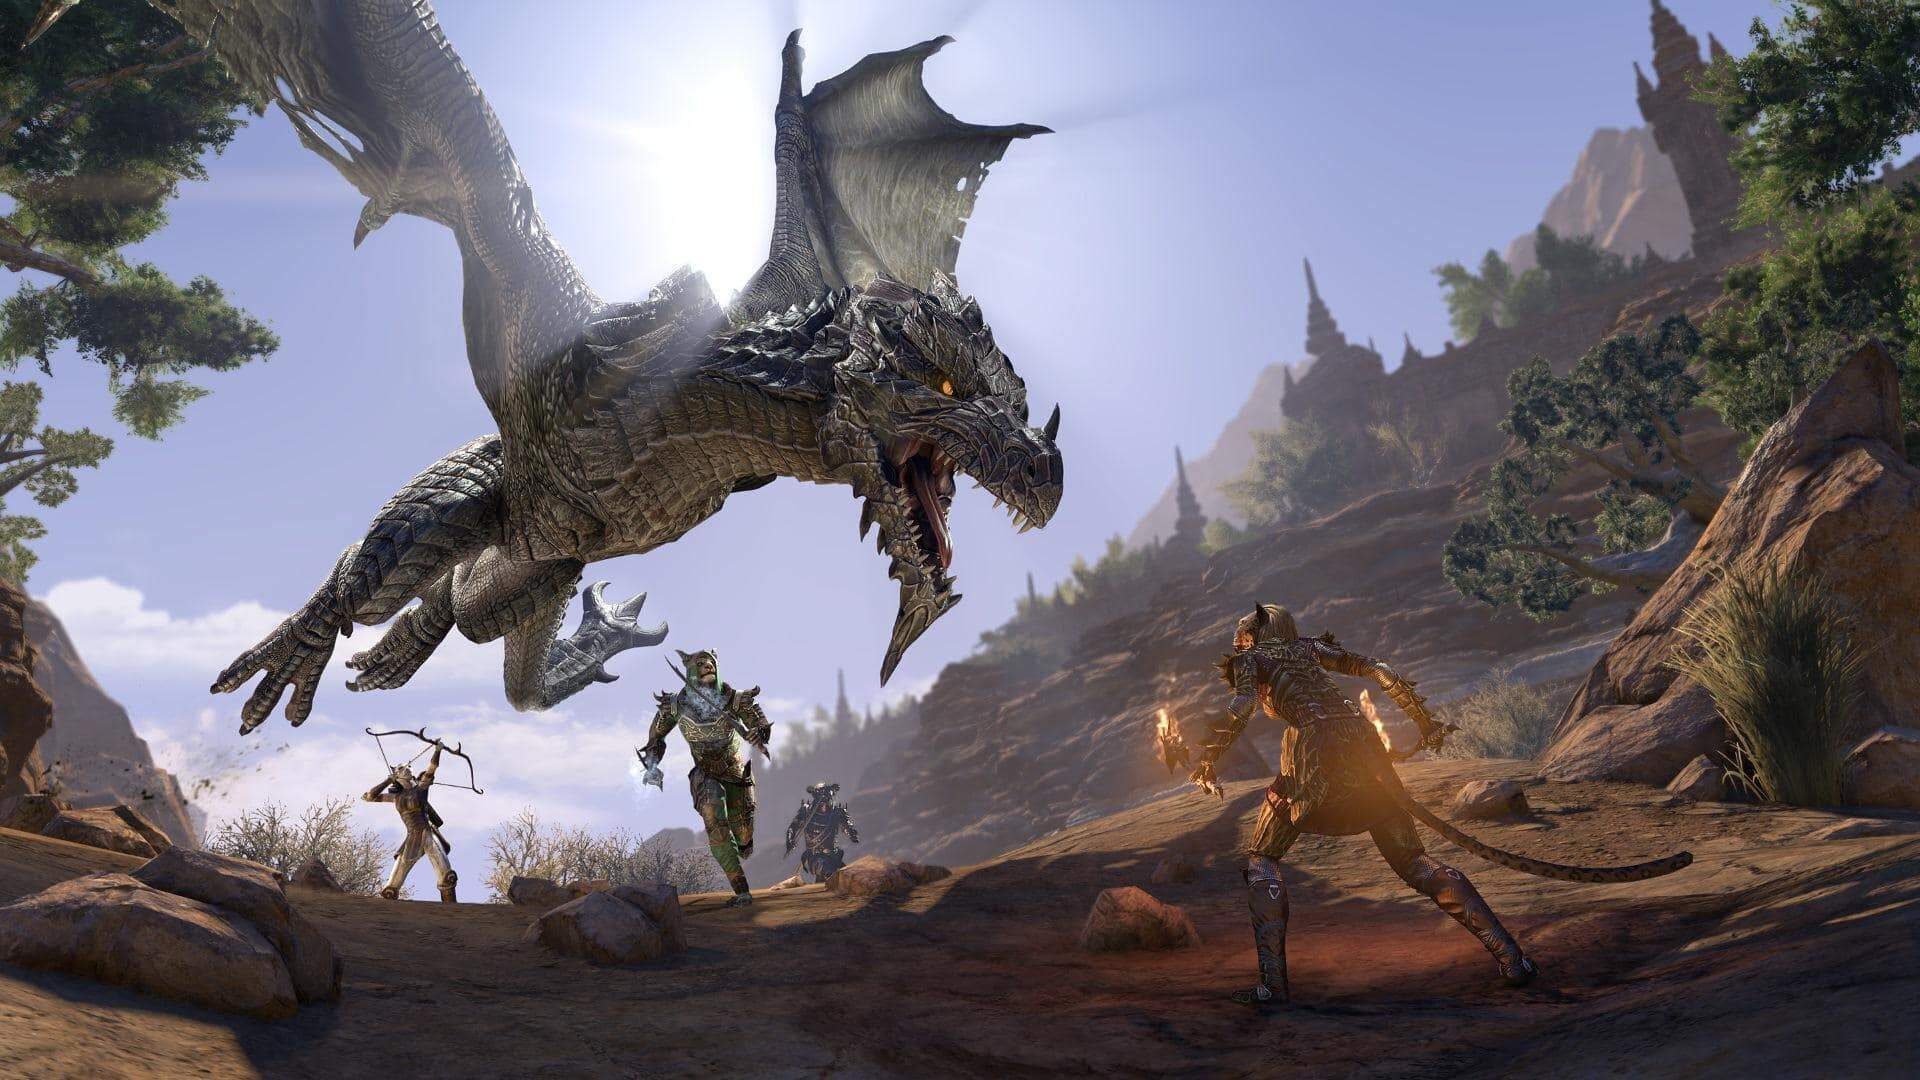 Elder Scrolls Online Reaches 13.5 Million Lifetime Players